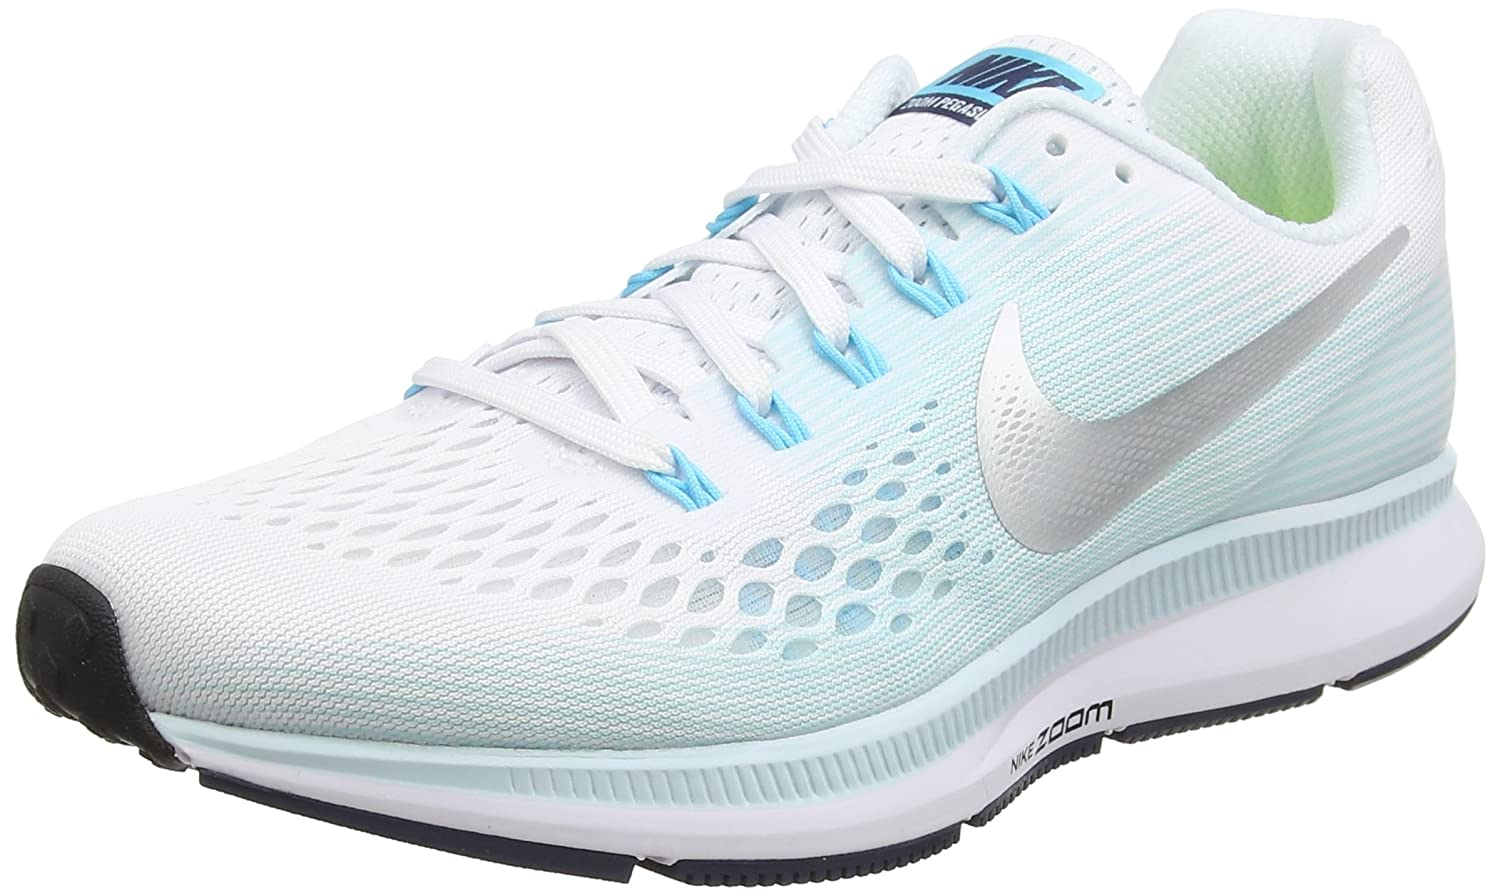 NIKE Women's Air Zoom Pegasus 34 Running Shoe B00EKWBD2S 7.5 B(M) US|White/Metallic Silver-glacier Blue